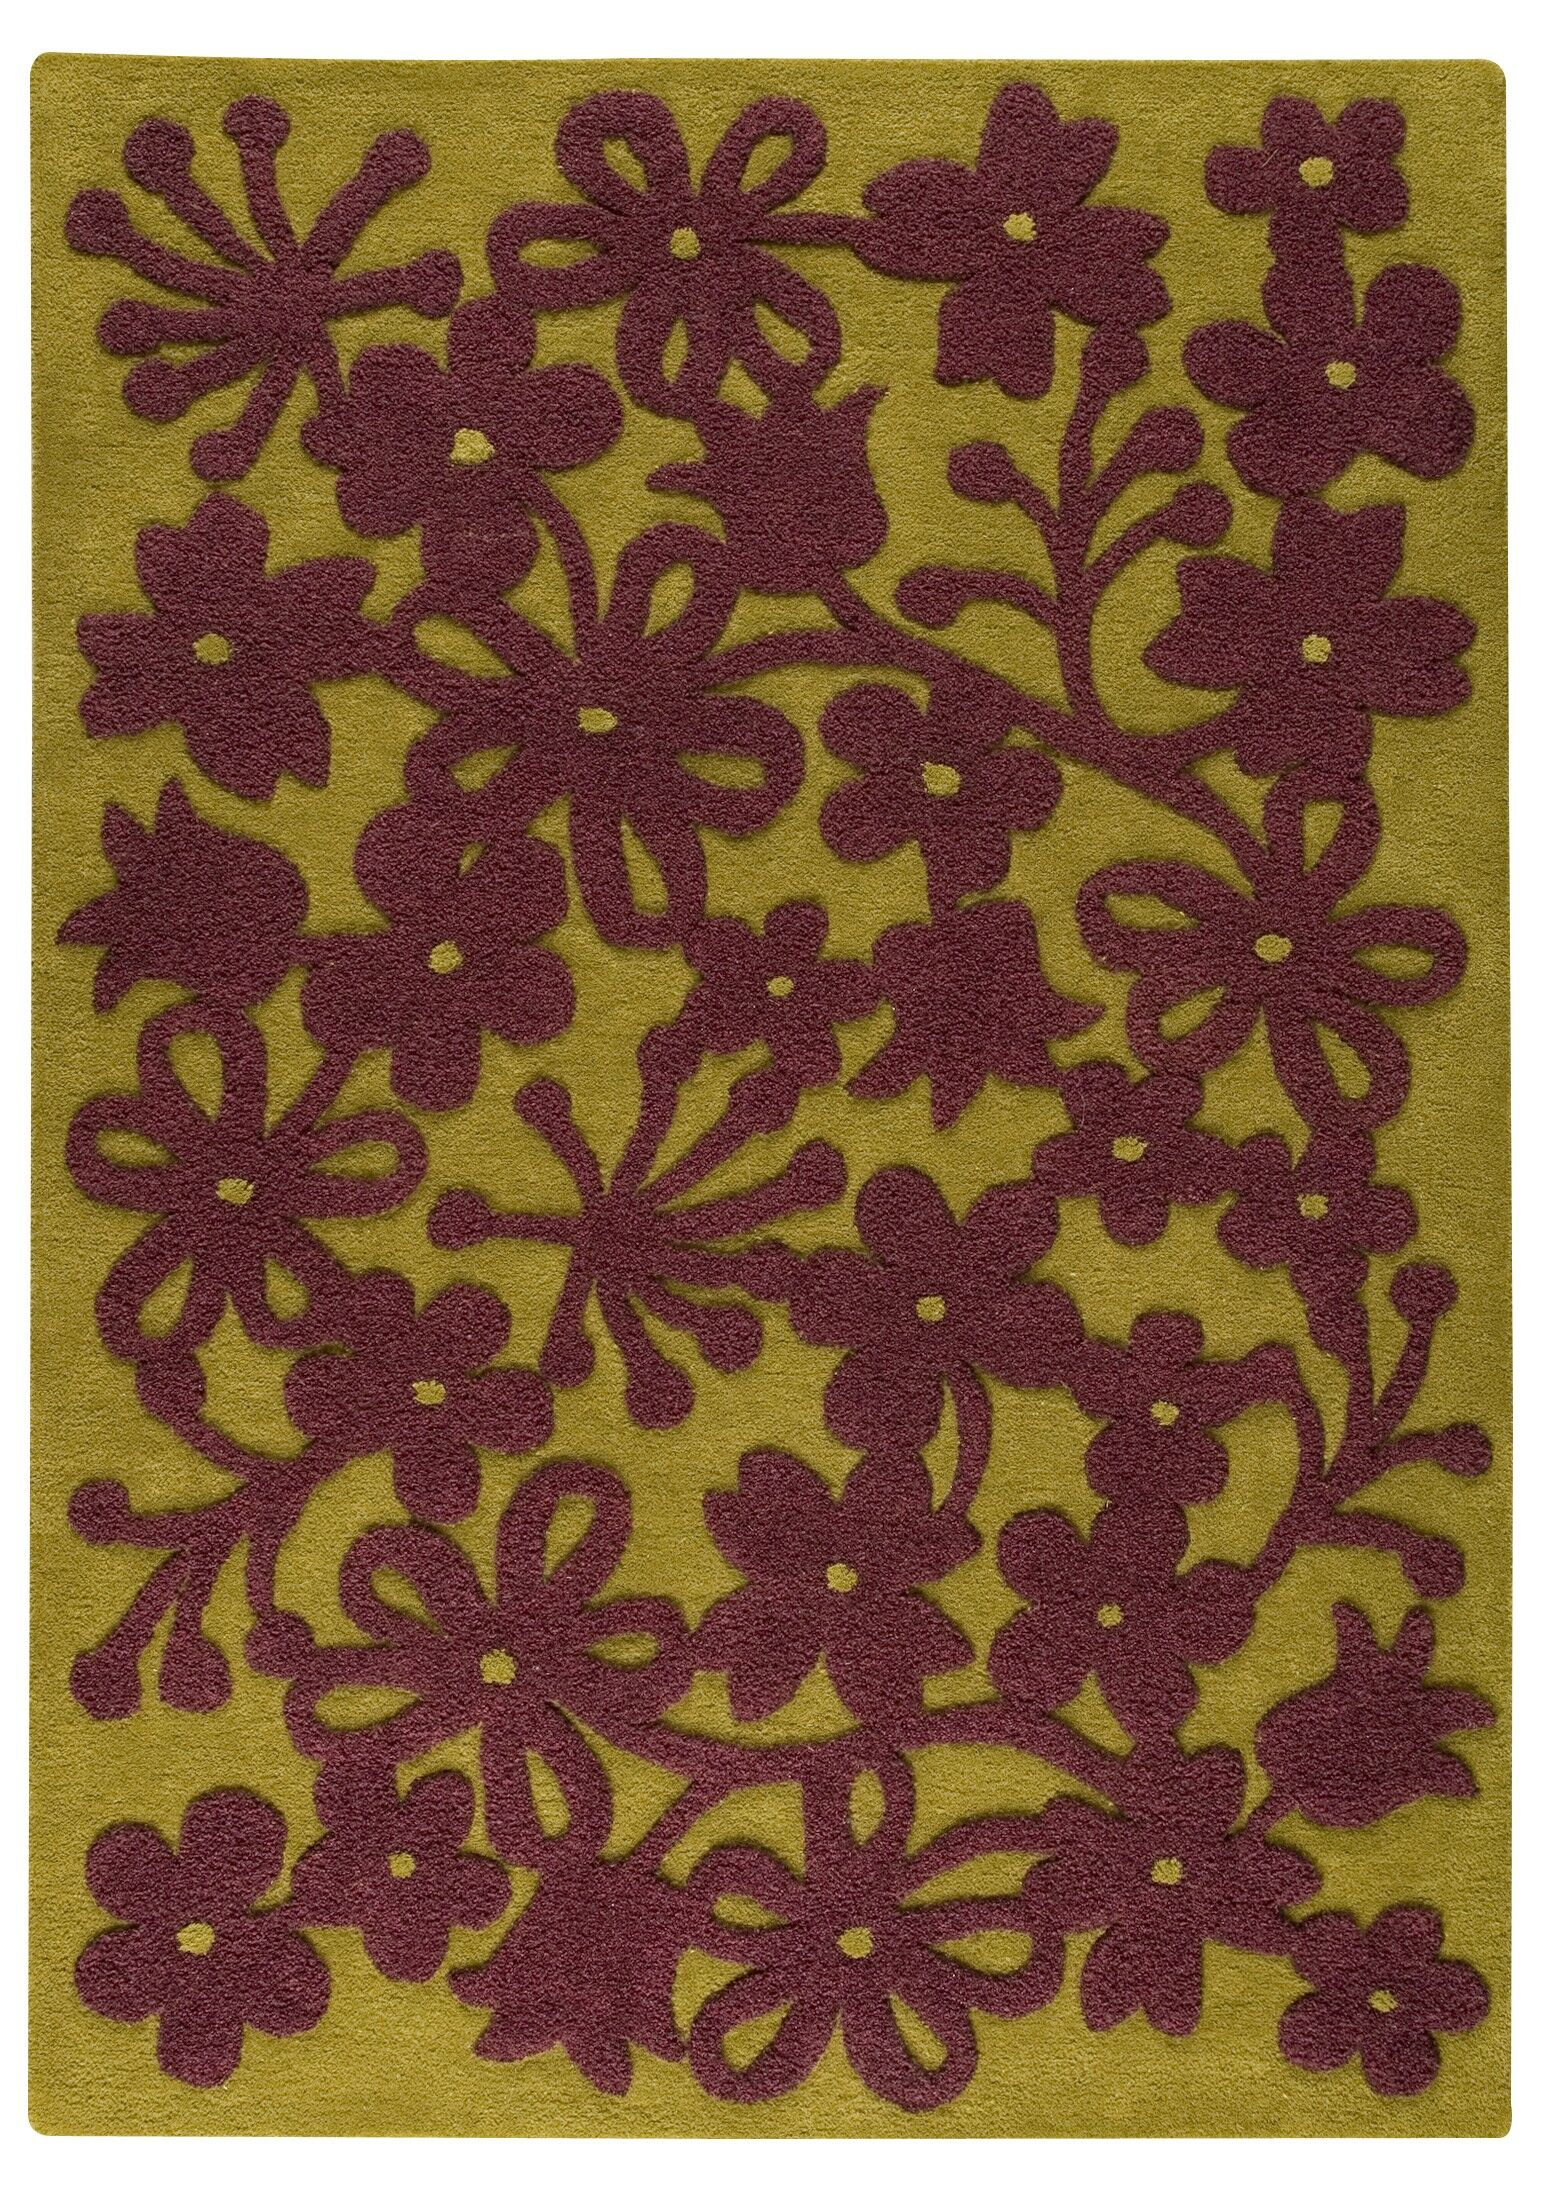 Annandale Green/Plum Area Rug Rug Size: 5'6